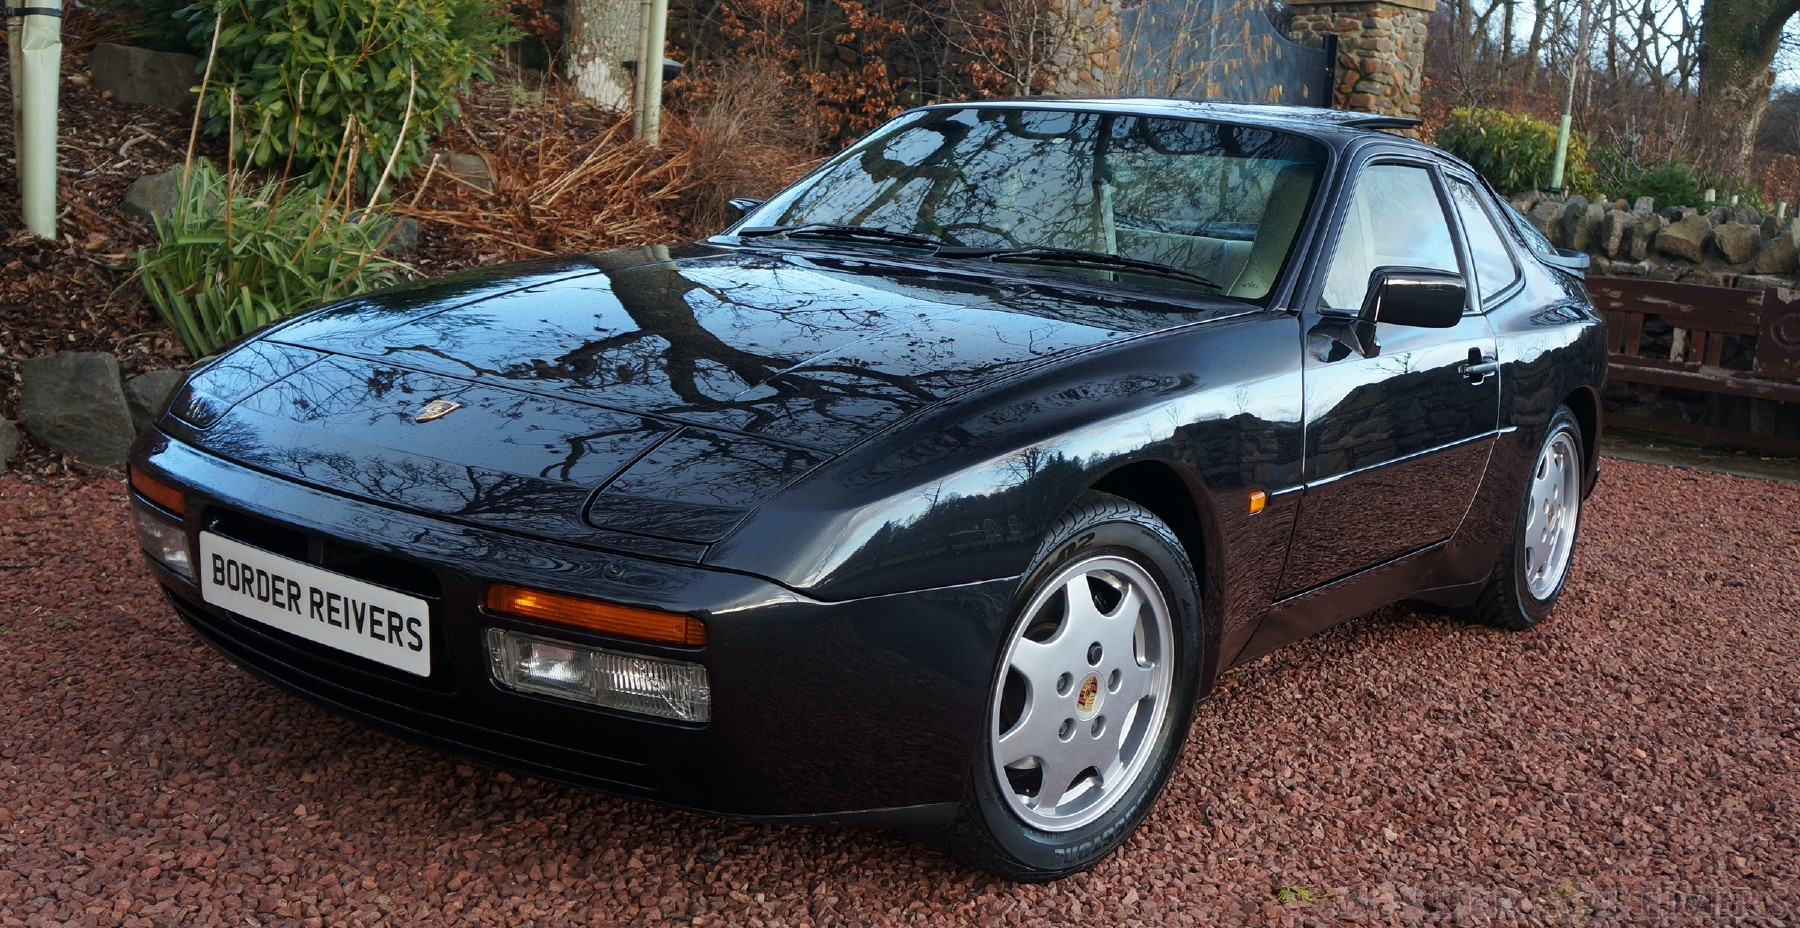 1990 Porsche 944S2 in Immaculate condition show quality SOLD (picture 1 of 6)